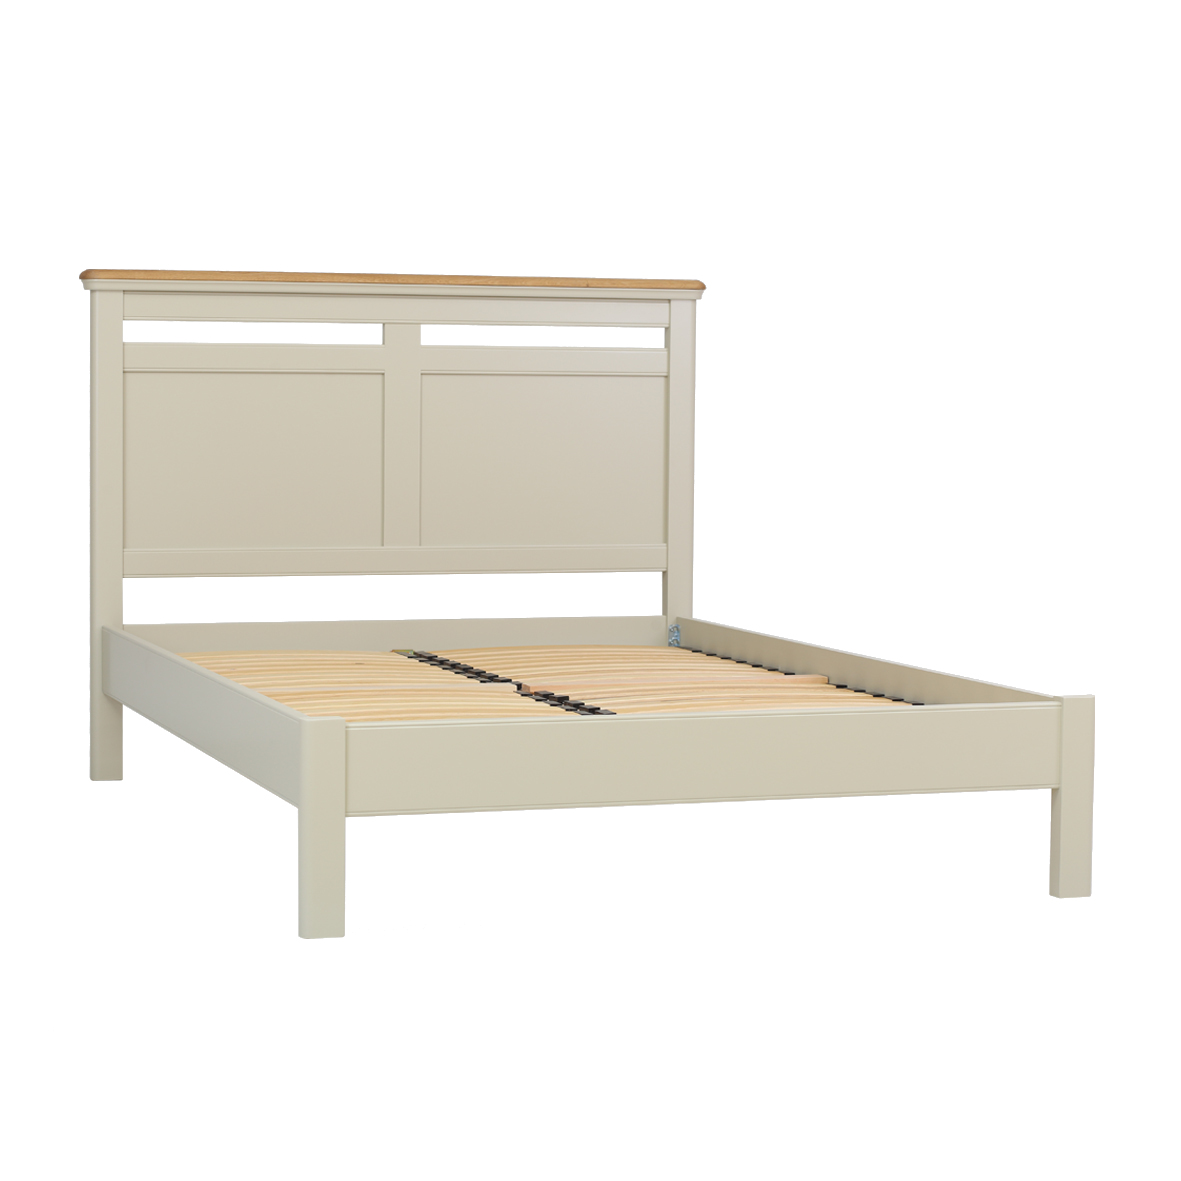 Cliona Bed Frame